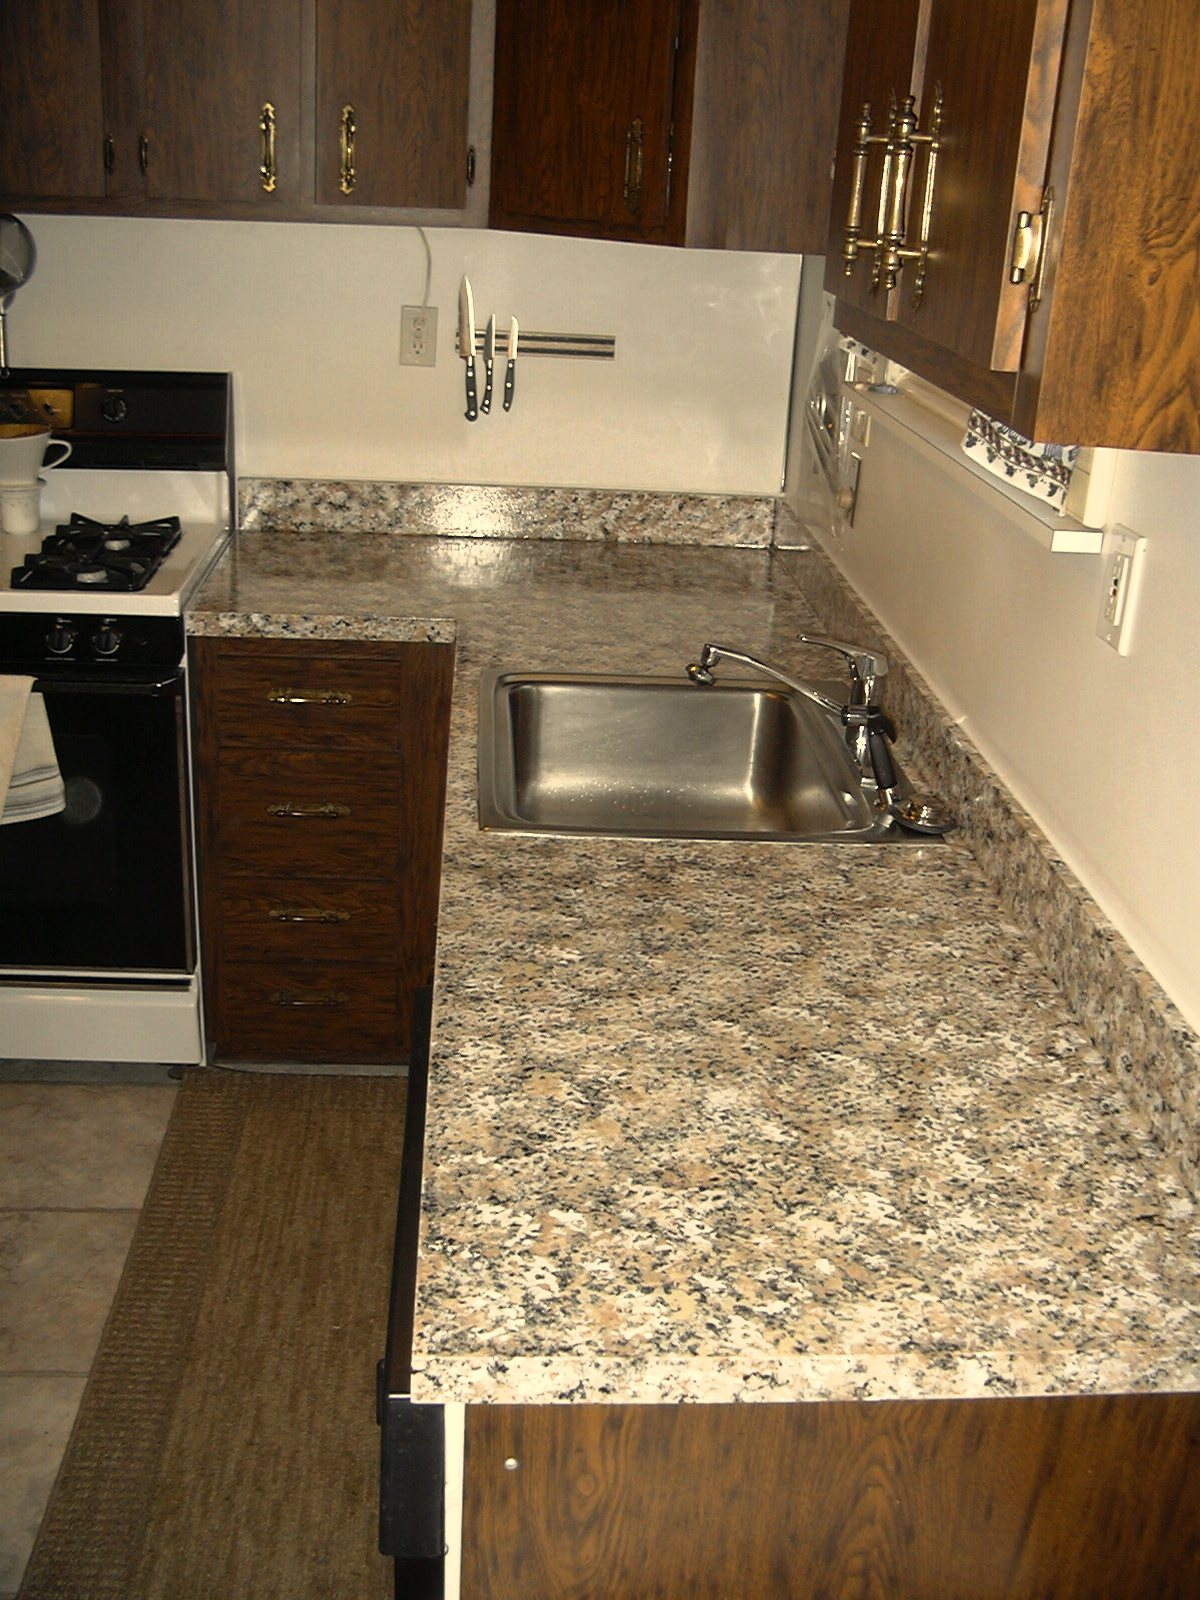 ... Experience with the Giani Granite Countertop Paint Kit?February 2012